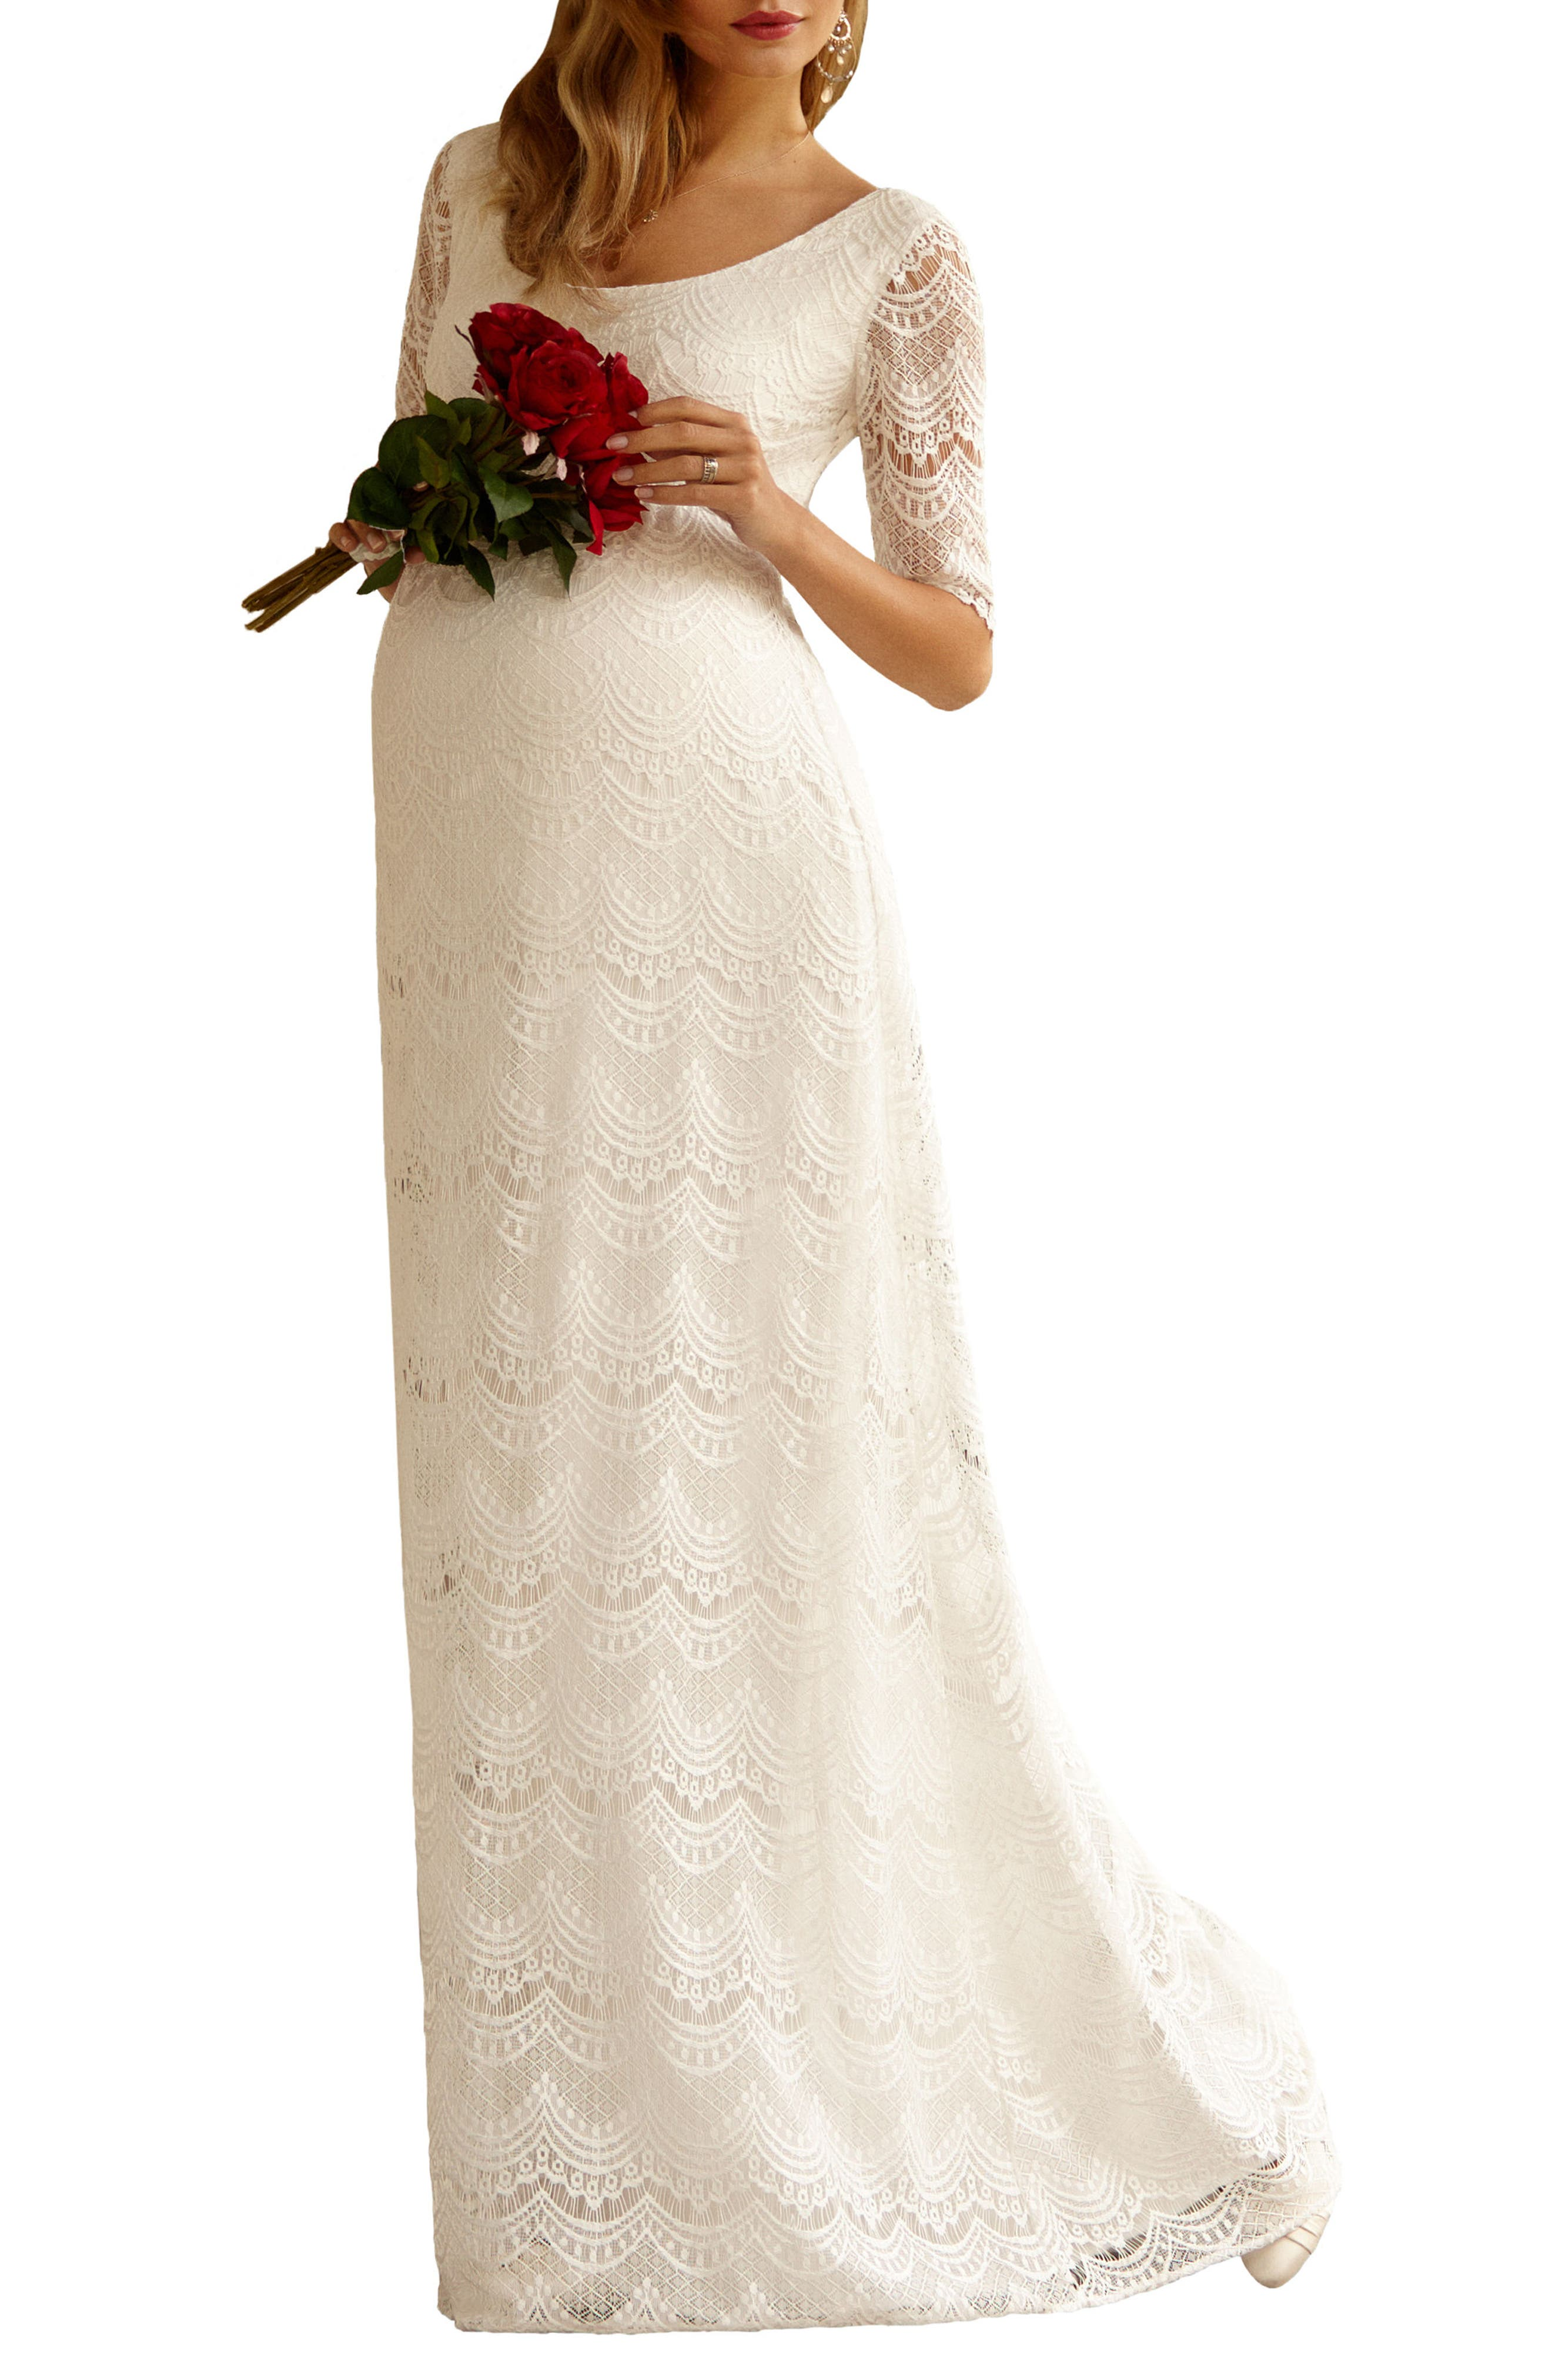 Verona Maternity Gown,                         Main,                         color, BRIGHT IVORY